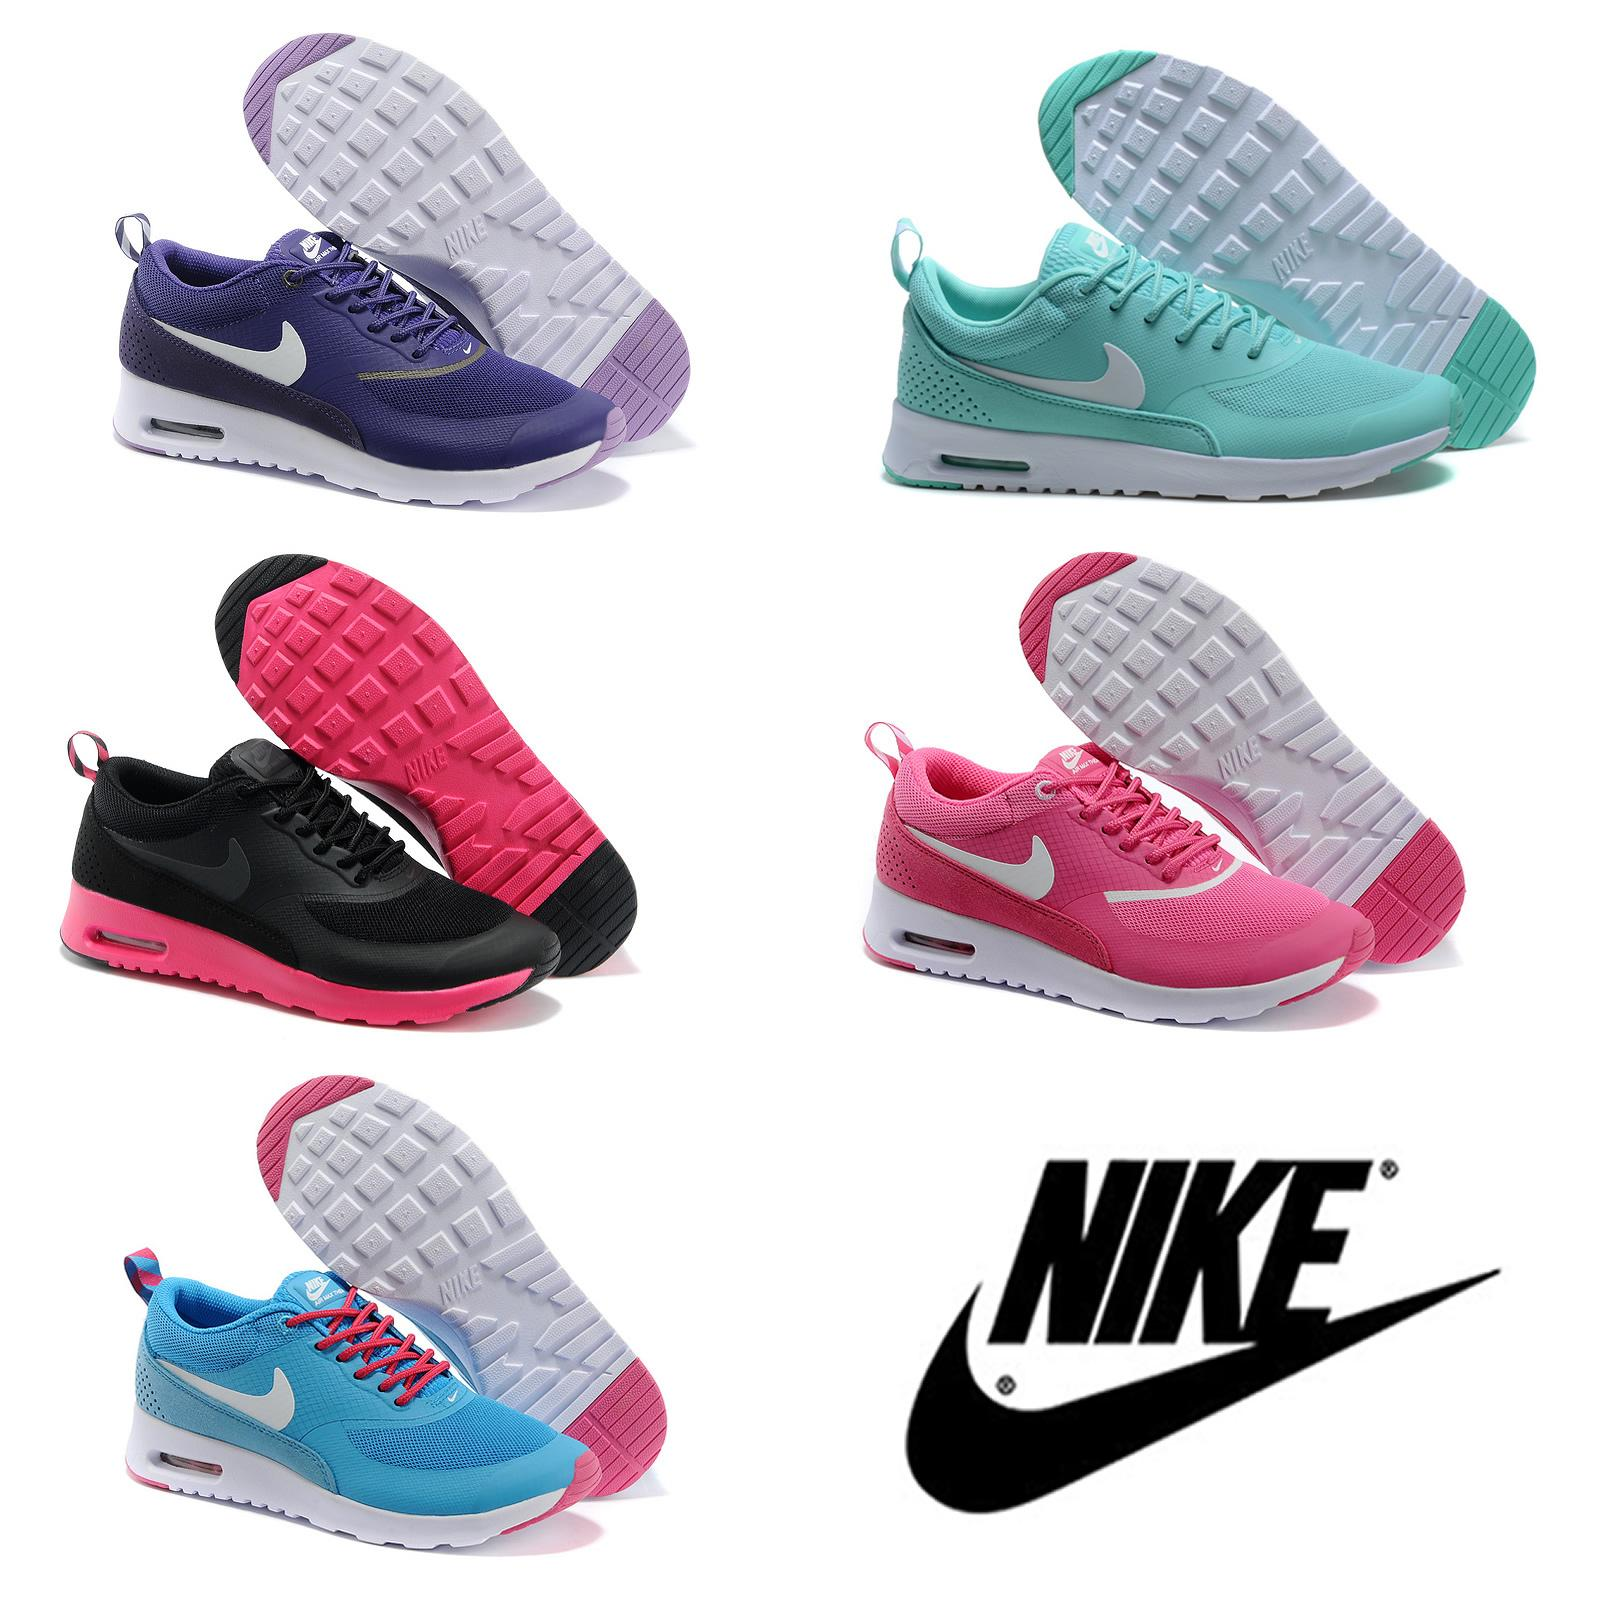 vêtements nike enfant - Nike Air Max Thea Holographic Glacier Ice